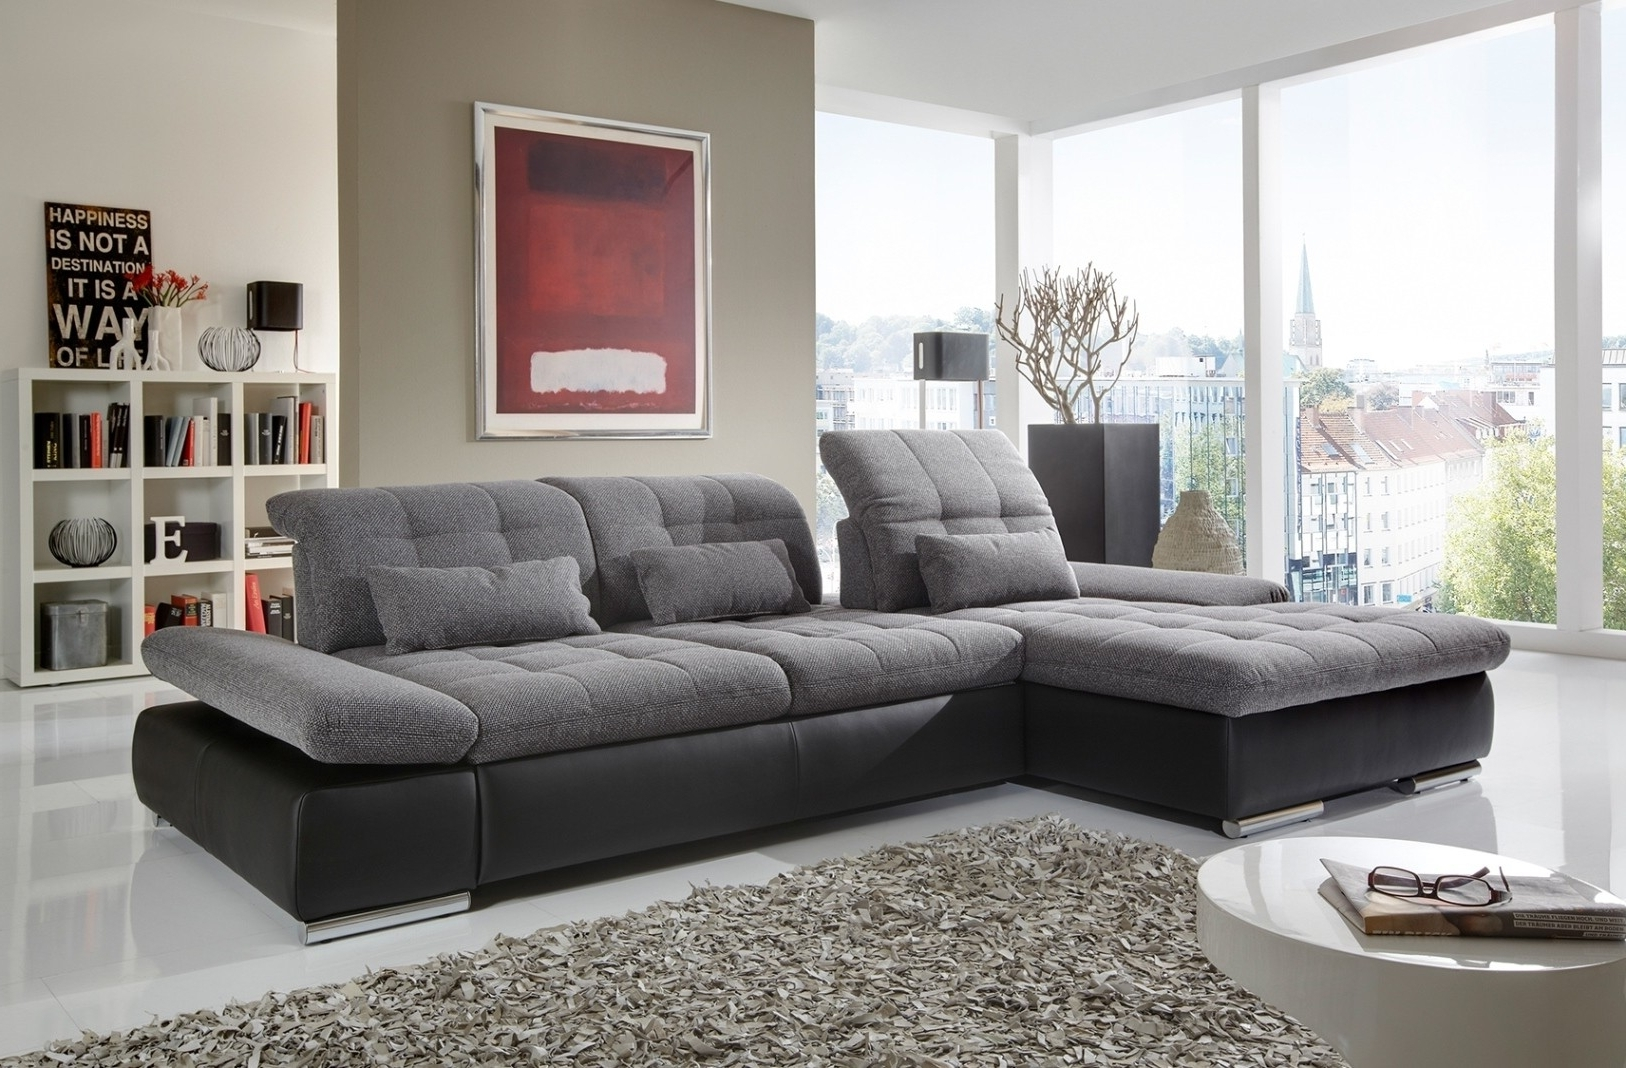 Alpine Sectional Sofa In Grey Fabric And Black Leather Left Chaise In Newest Trinidad And Tobago Sectional Sofas (View 8 of 20)